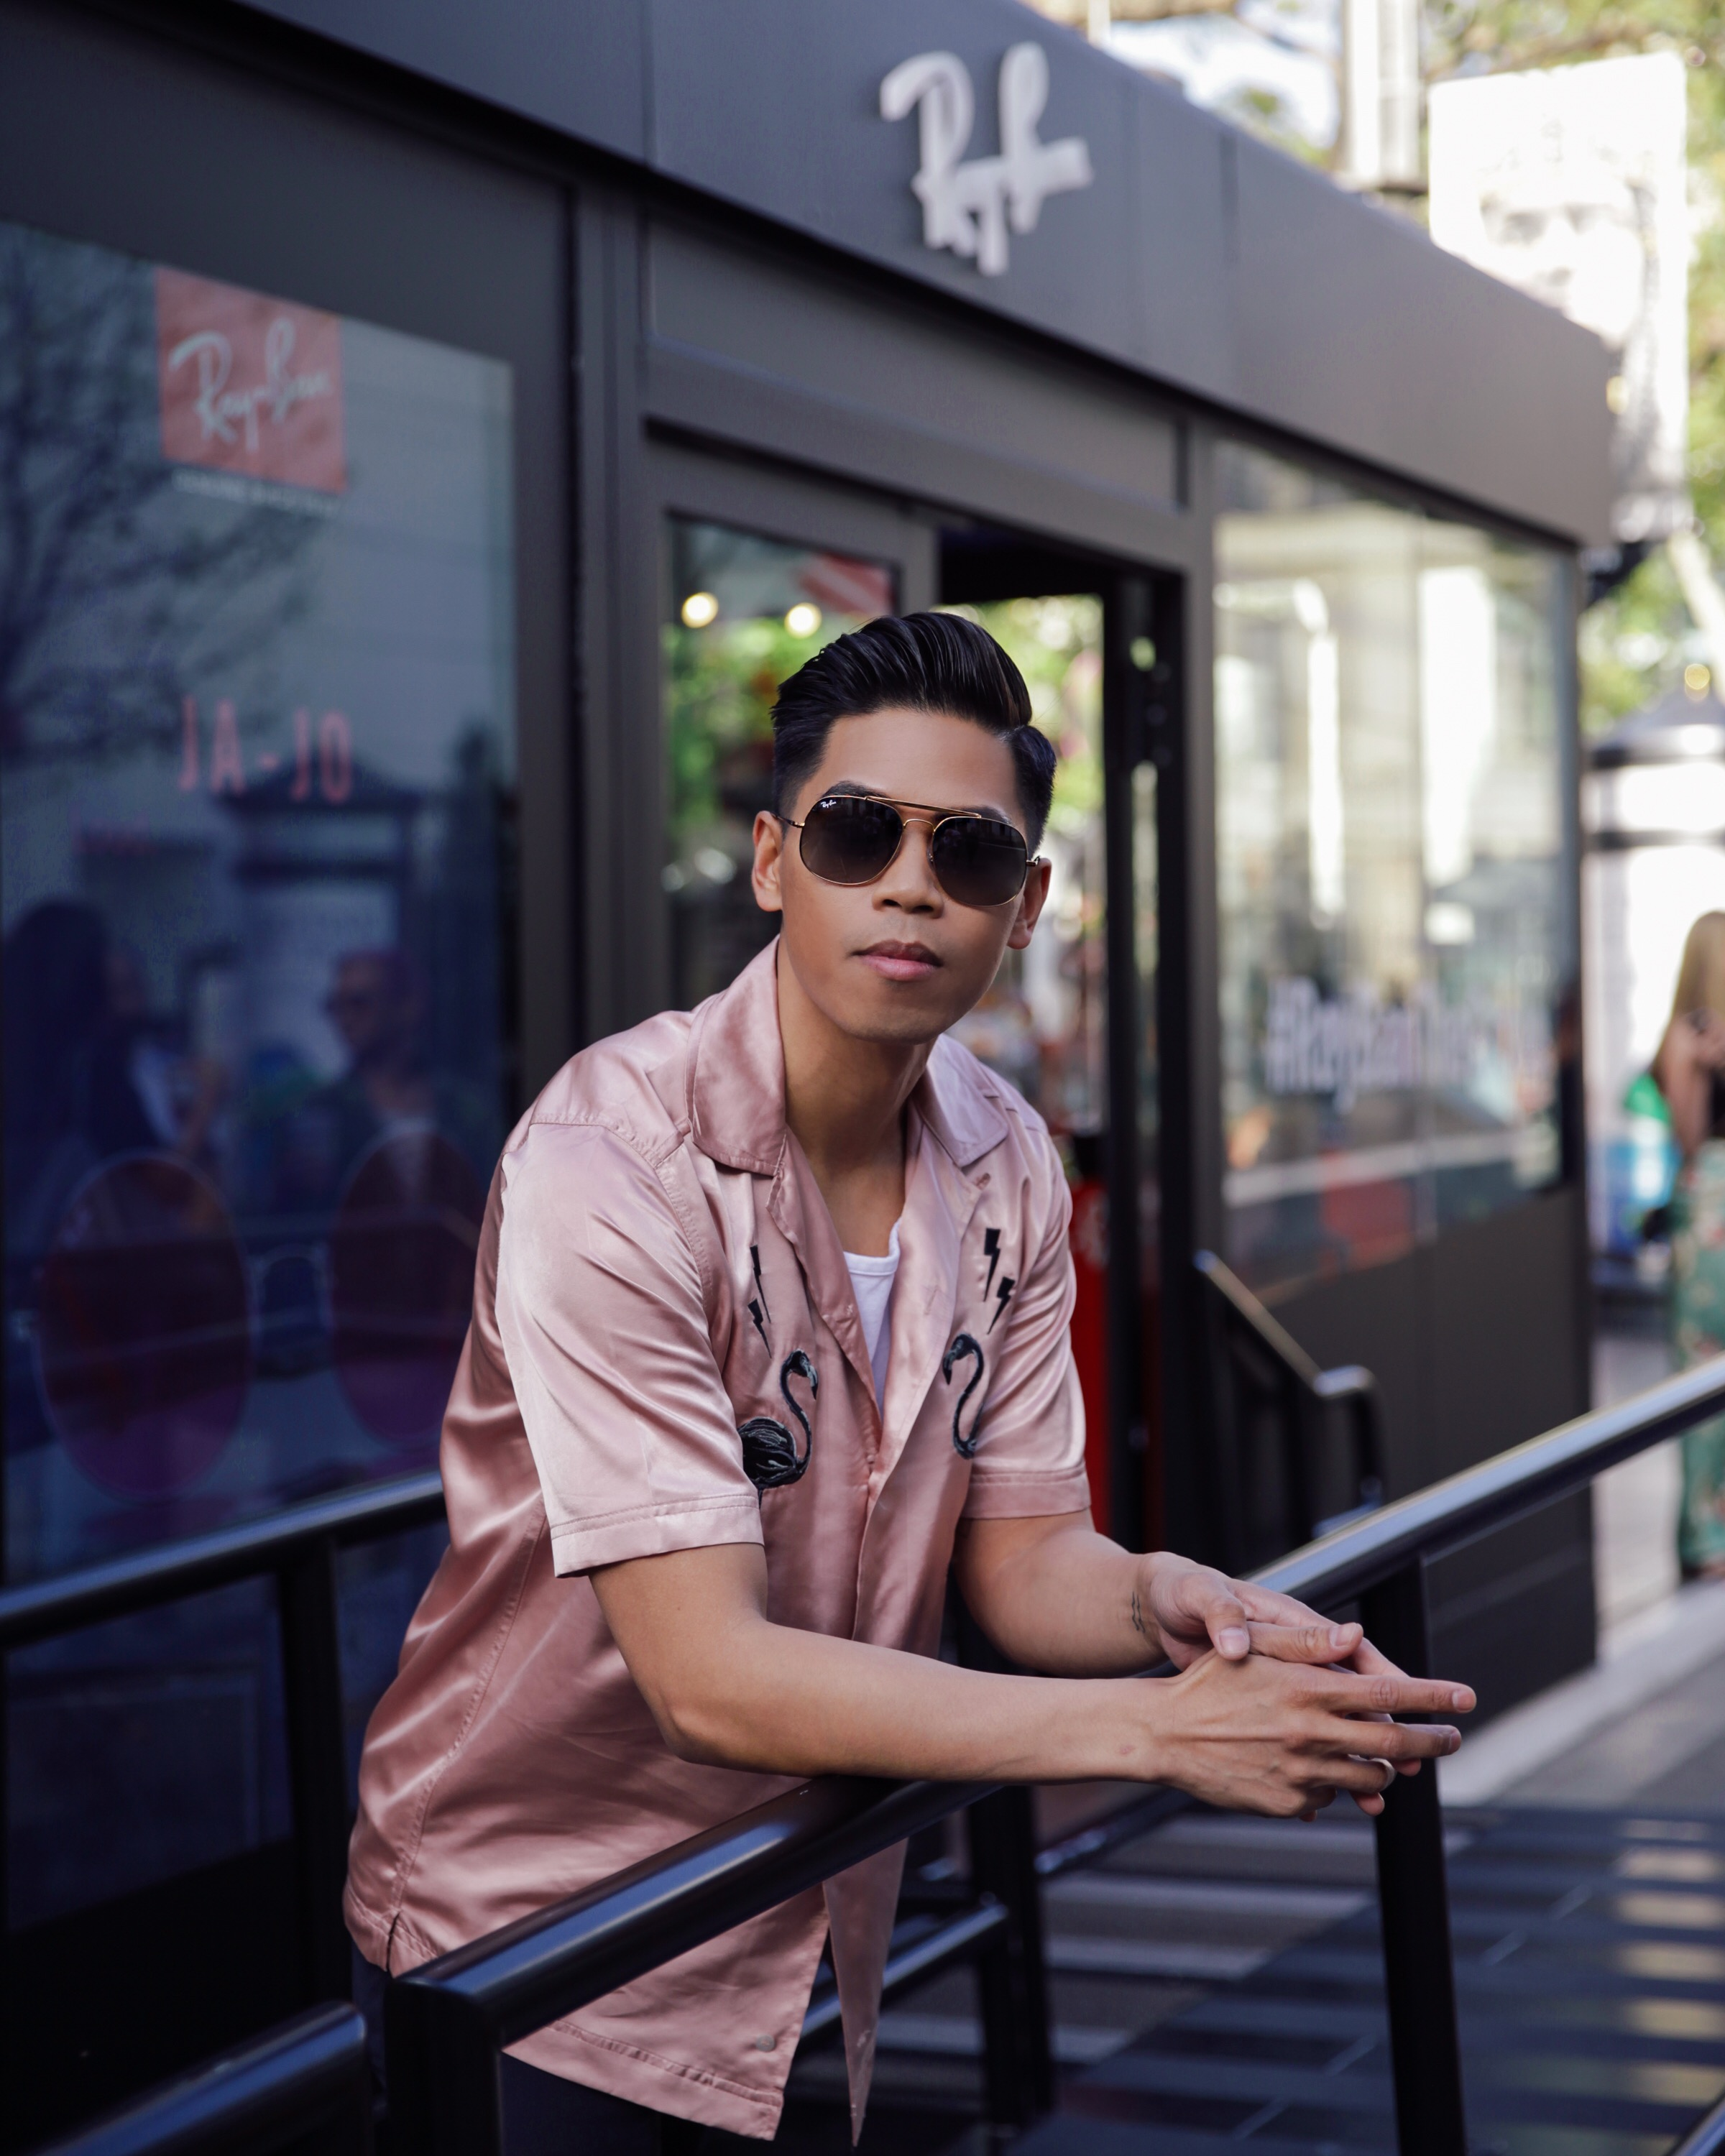 rayban the general street style blogger